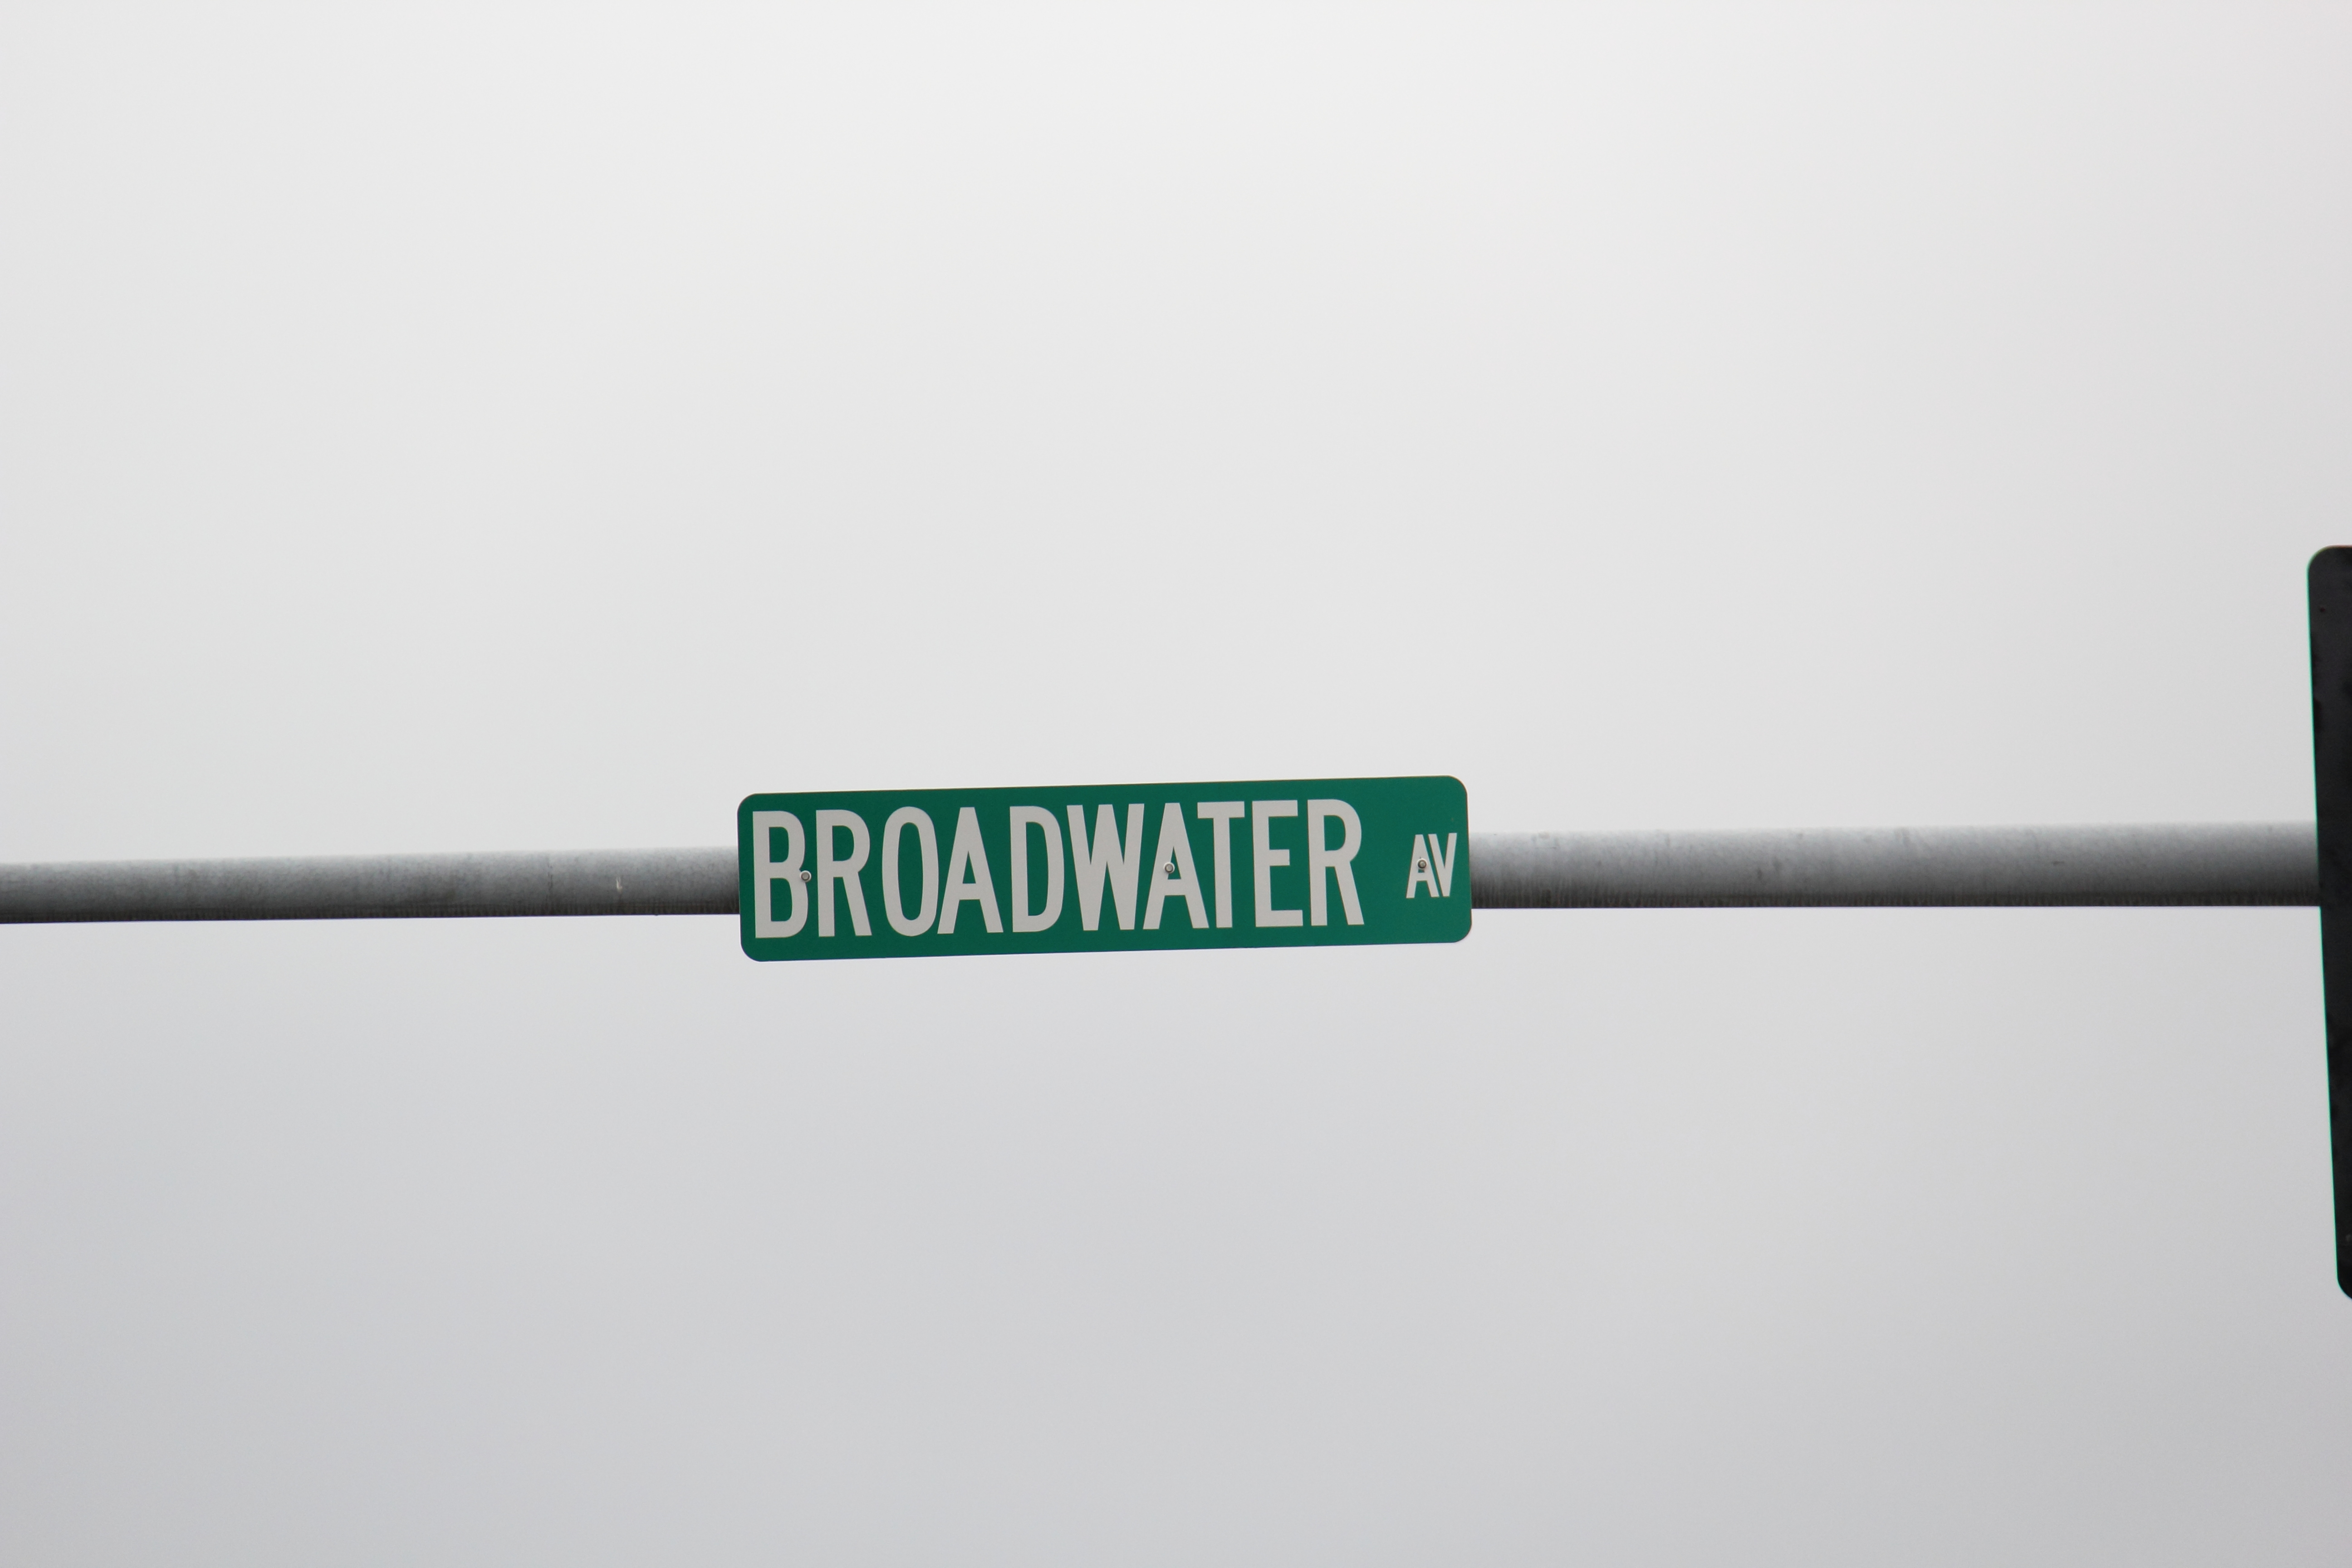 Broadwater Ave Street Sign Billings MT